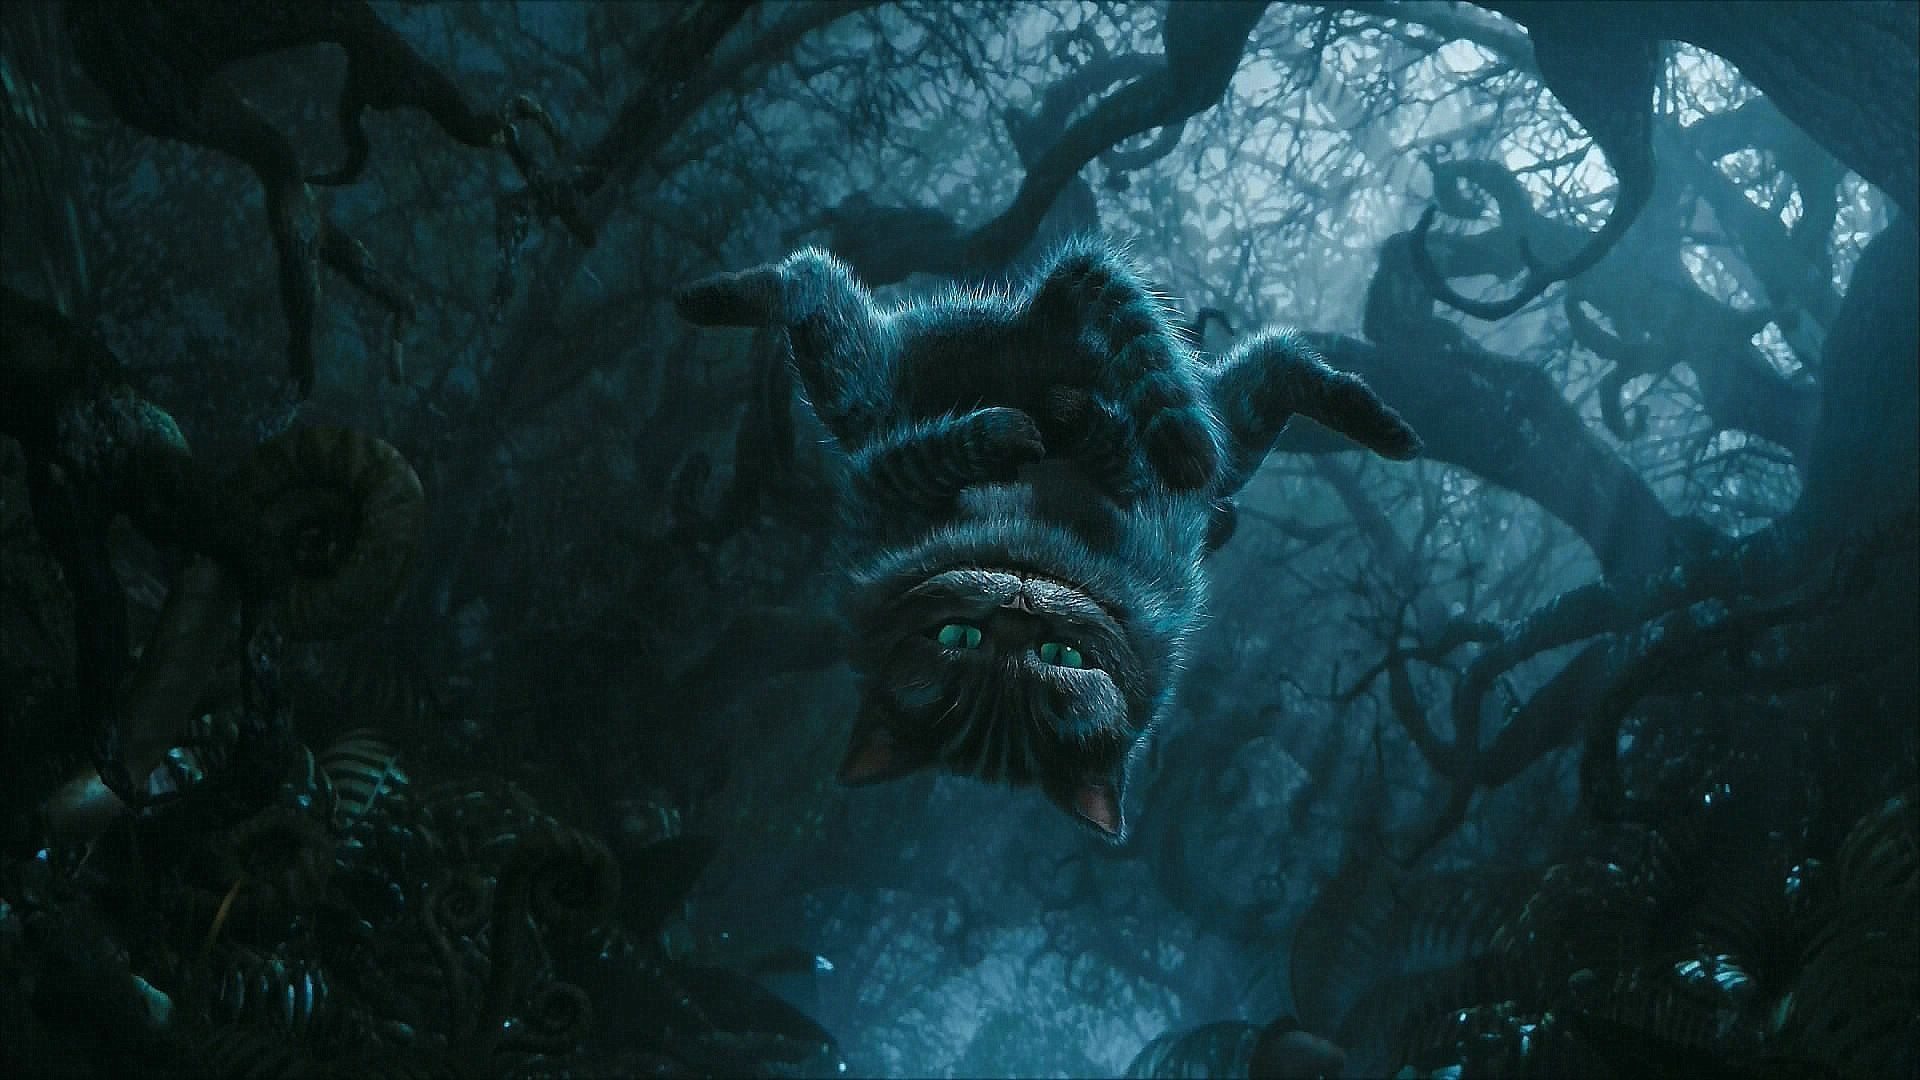 Cheshire Cat Wallpaper Download Free Cool Full Hd Wallpapers For